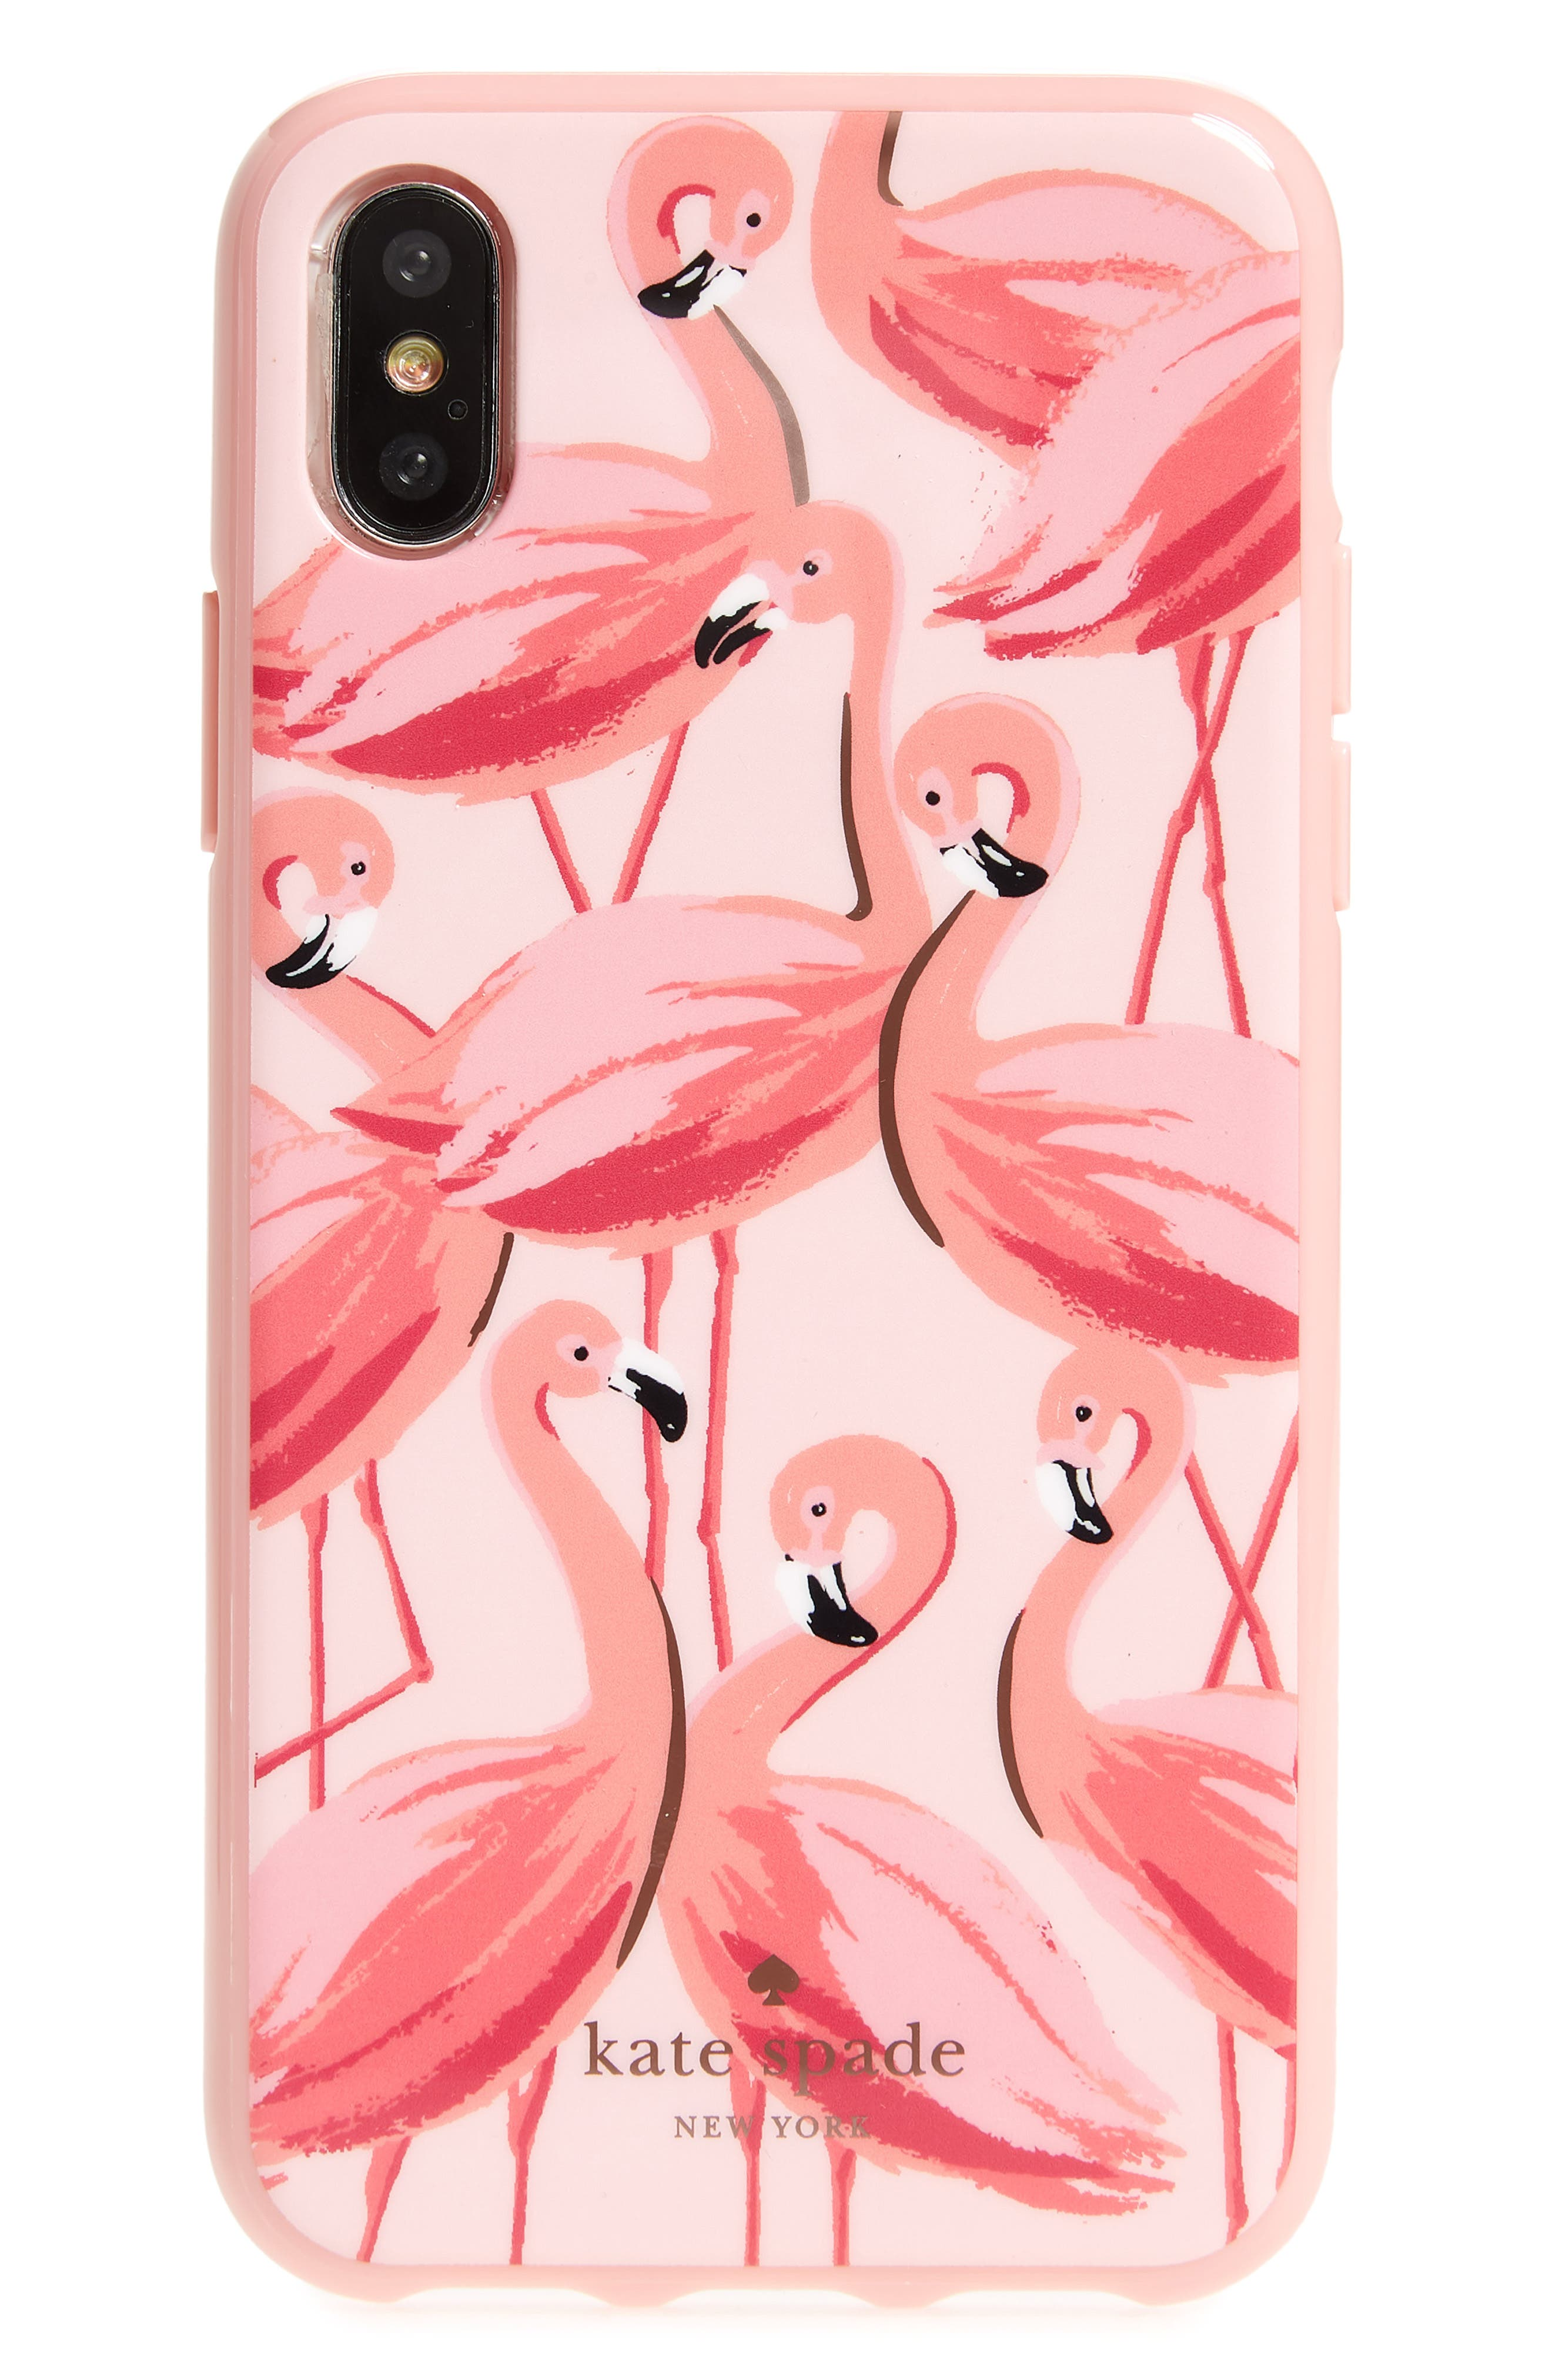 KATE SPADE NEW YORK painted flamingos iPhone X/Xs case, Main, color, 673